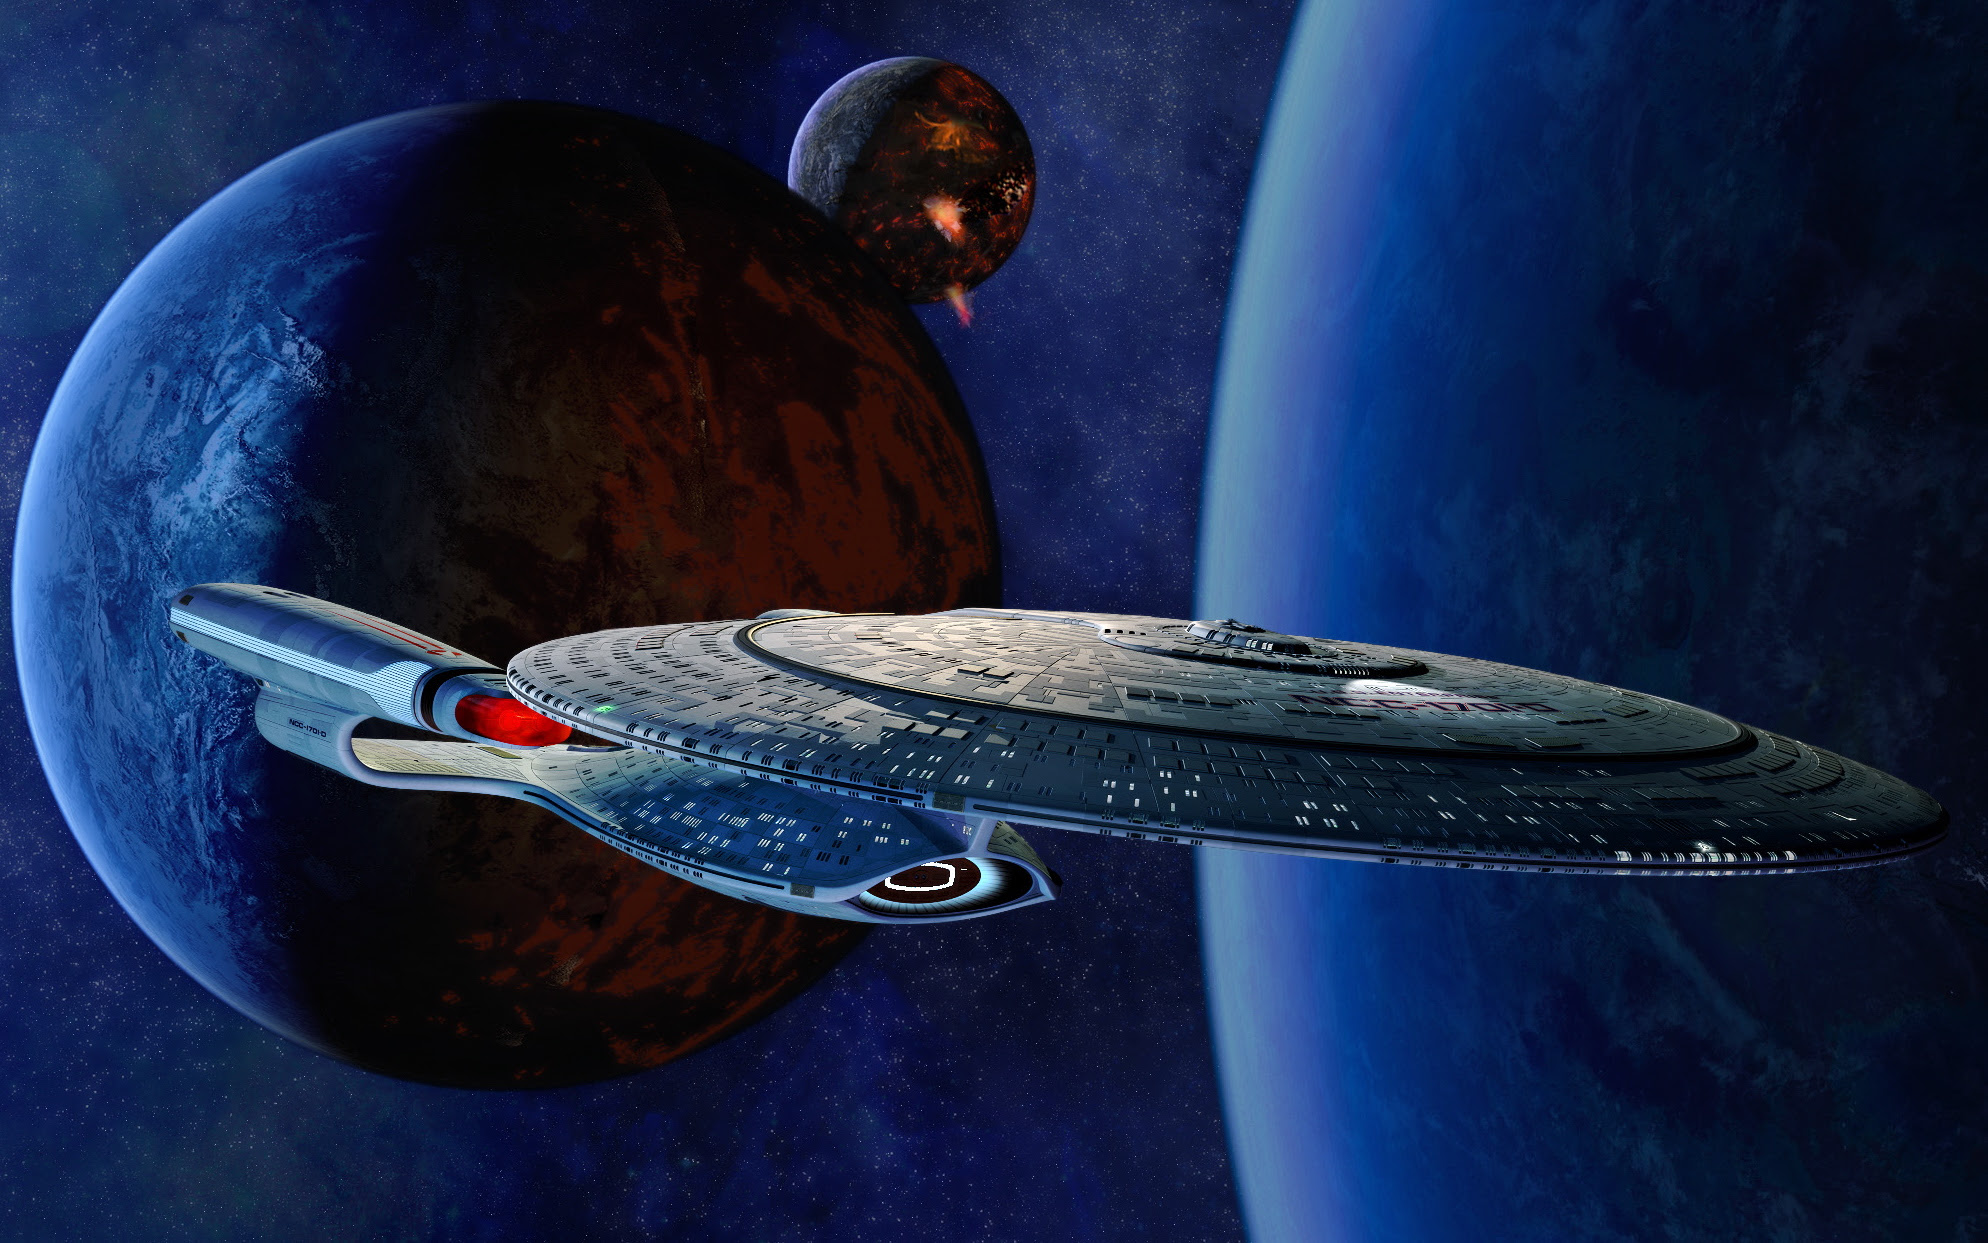 Star Trek Deep Space Nine Wallpaper 1920x1080